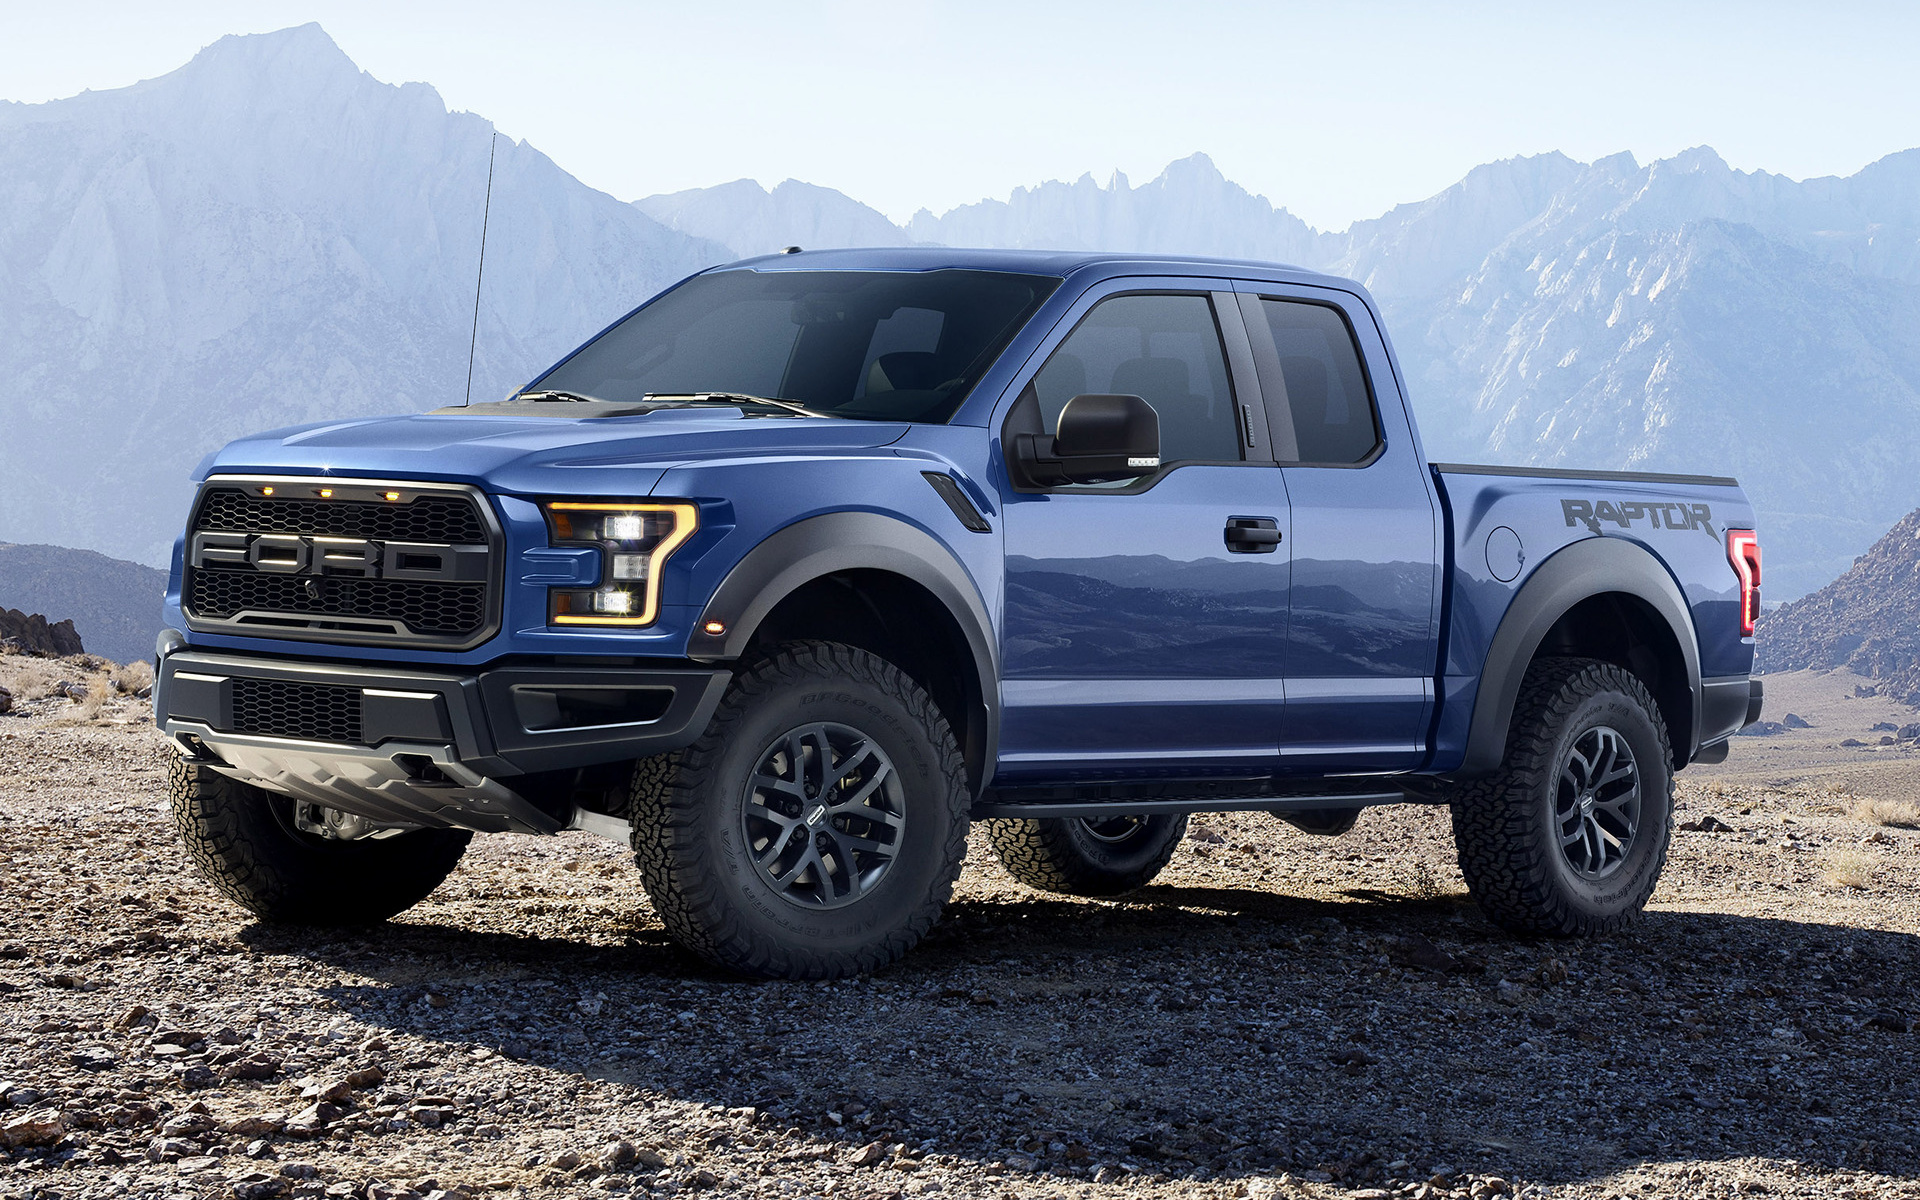 2017 Ford F150 Lifted >> 2017 Ford F-150 Raptor SuperCab - Wallpapers and HD Images | Car Pixel